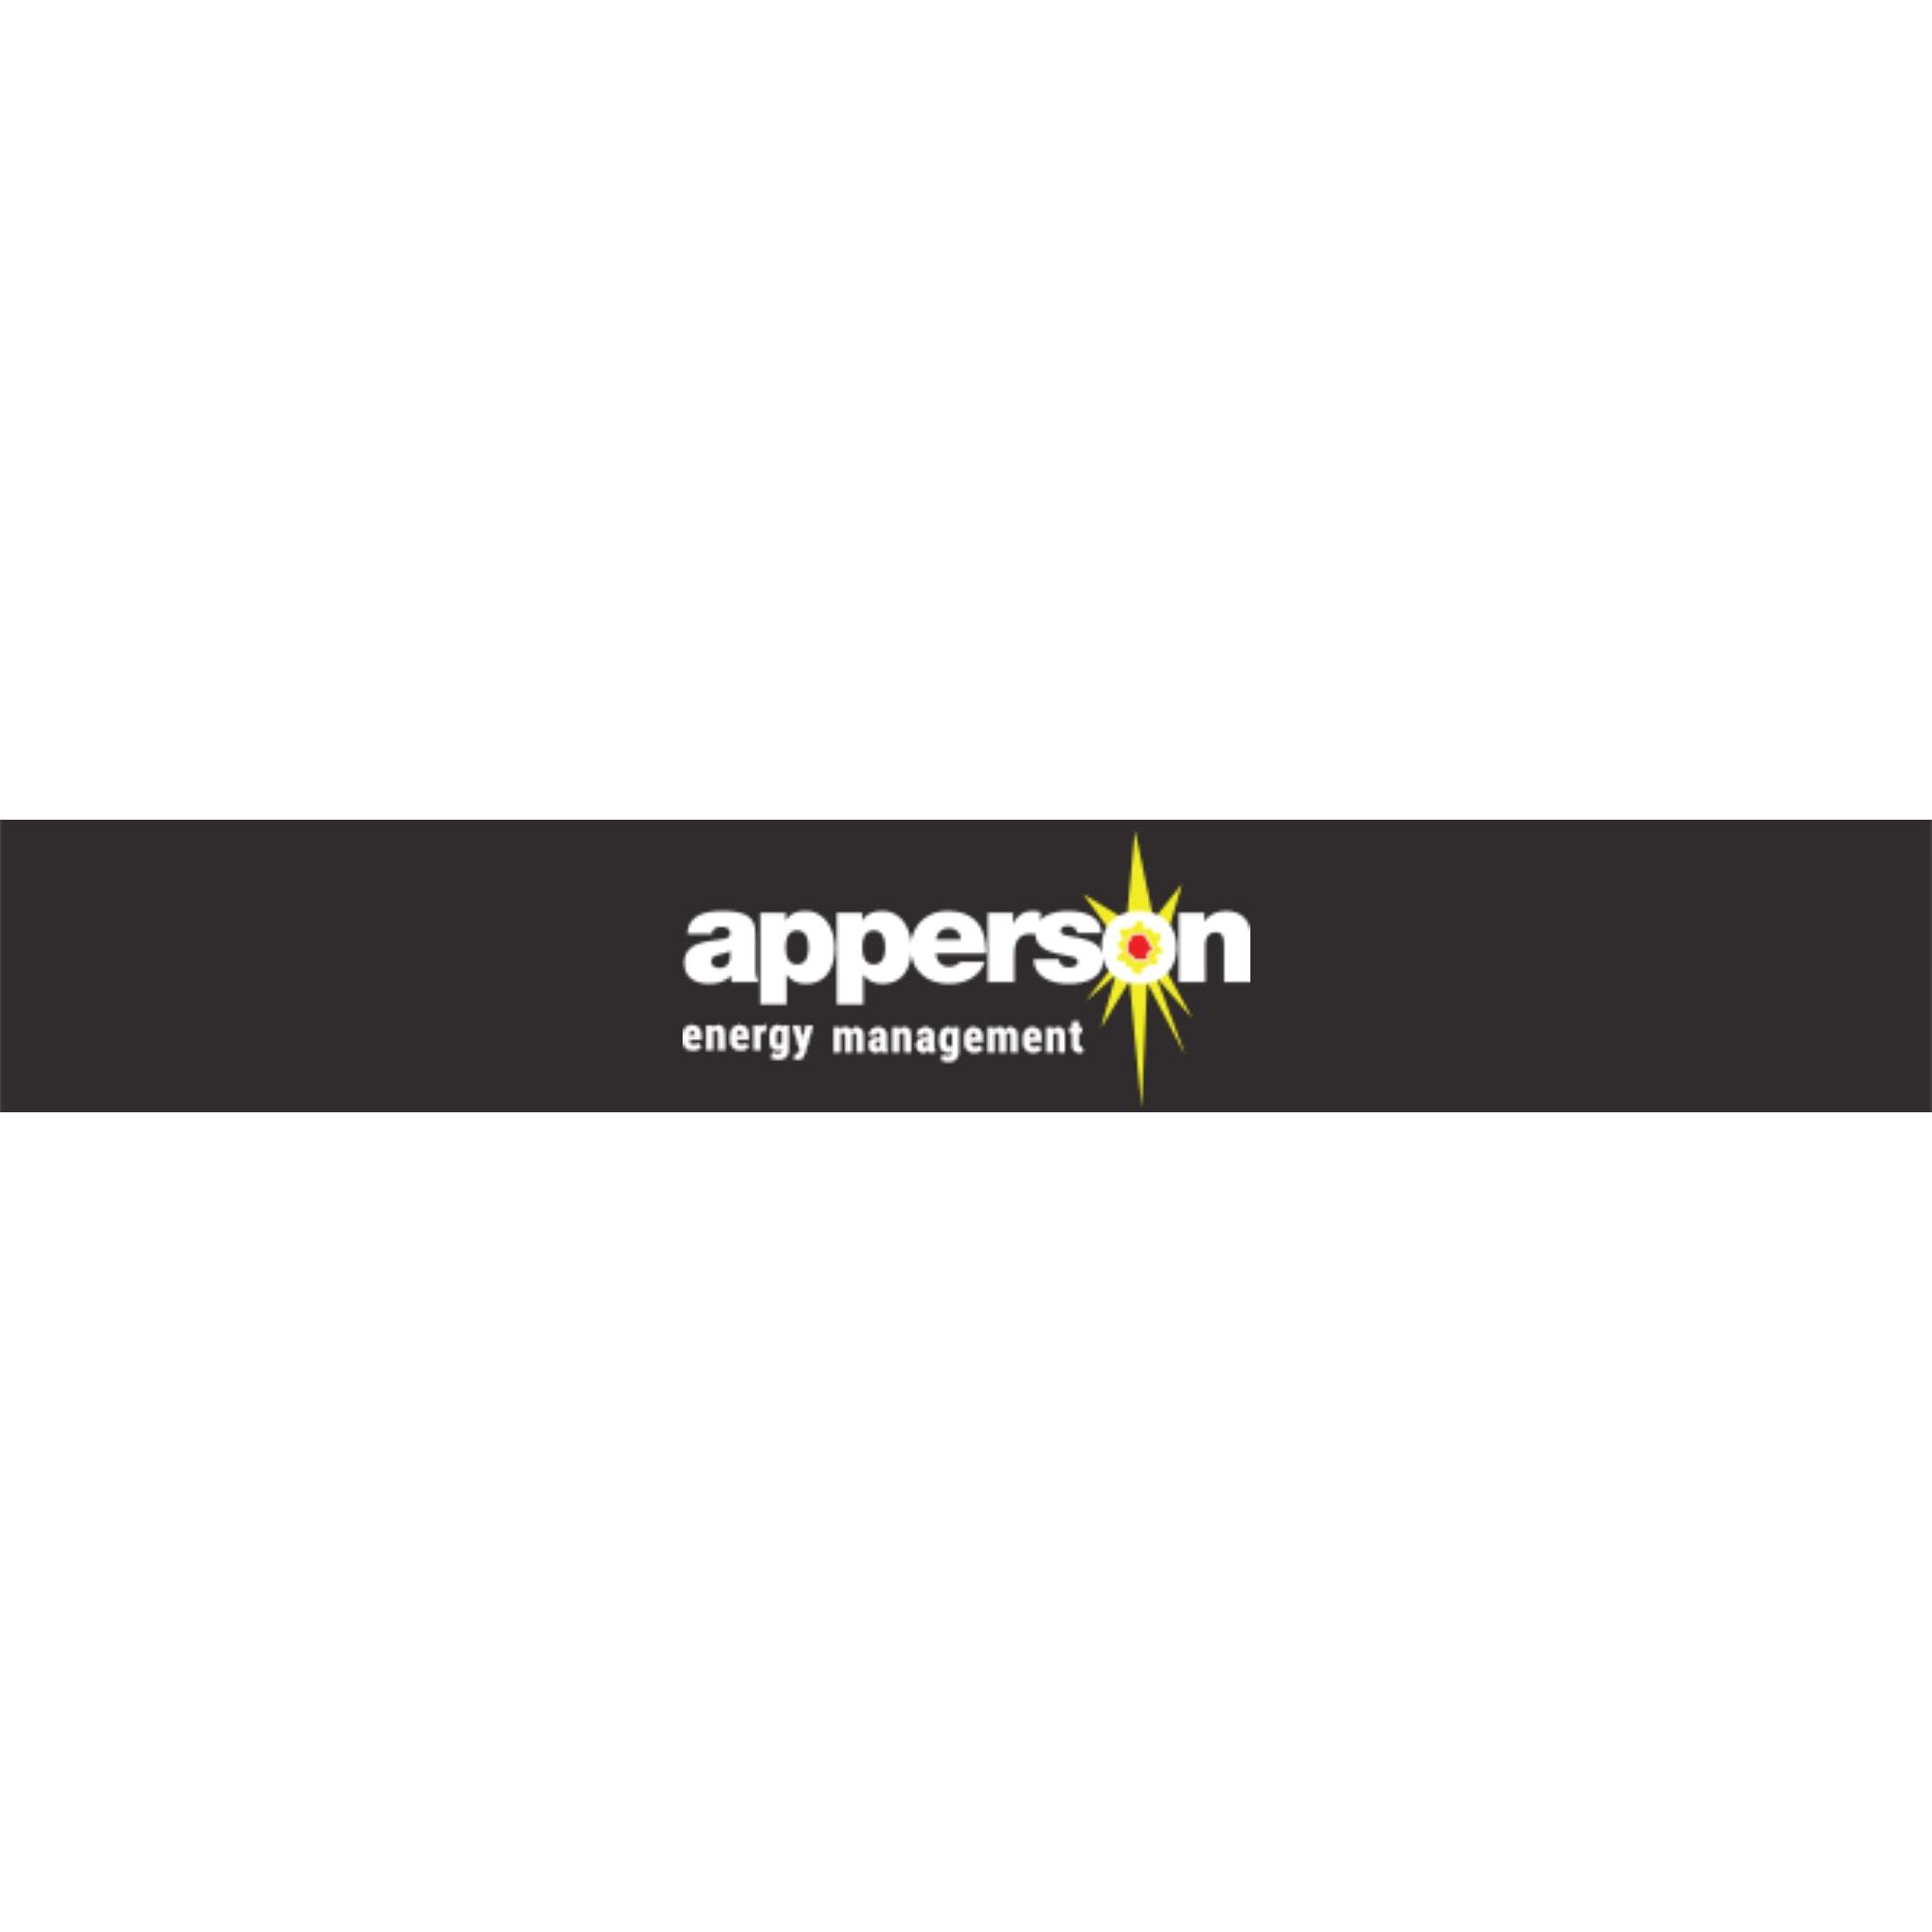 Apperson Energy Management